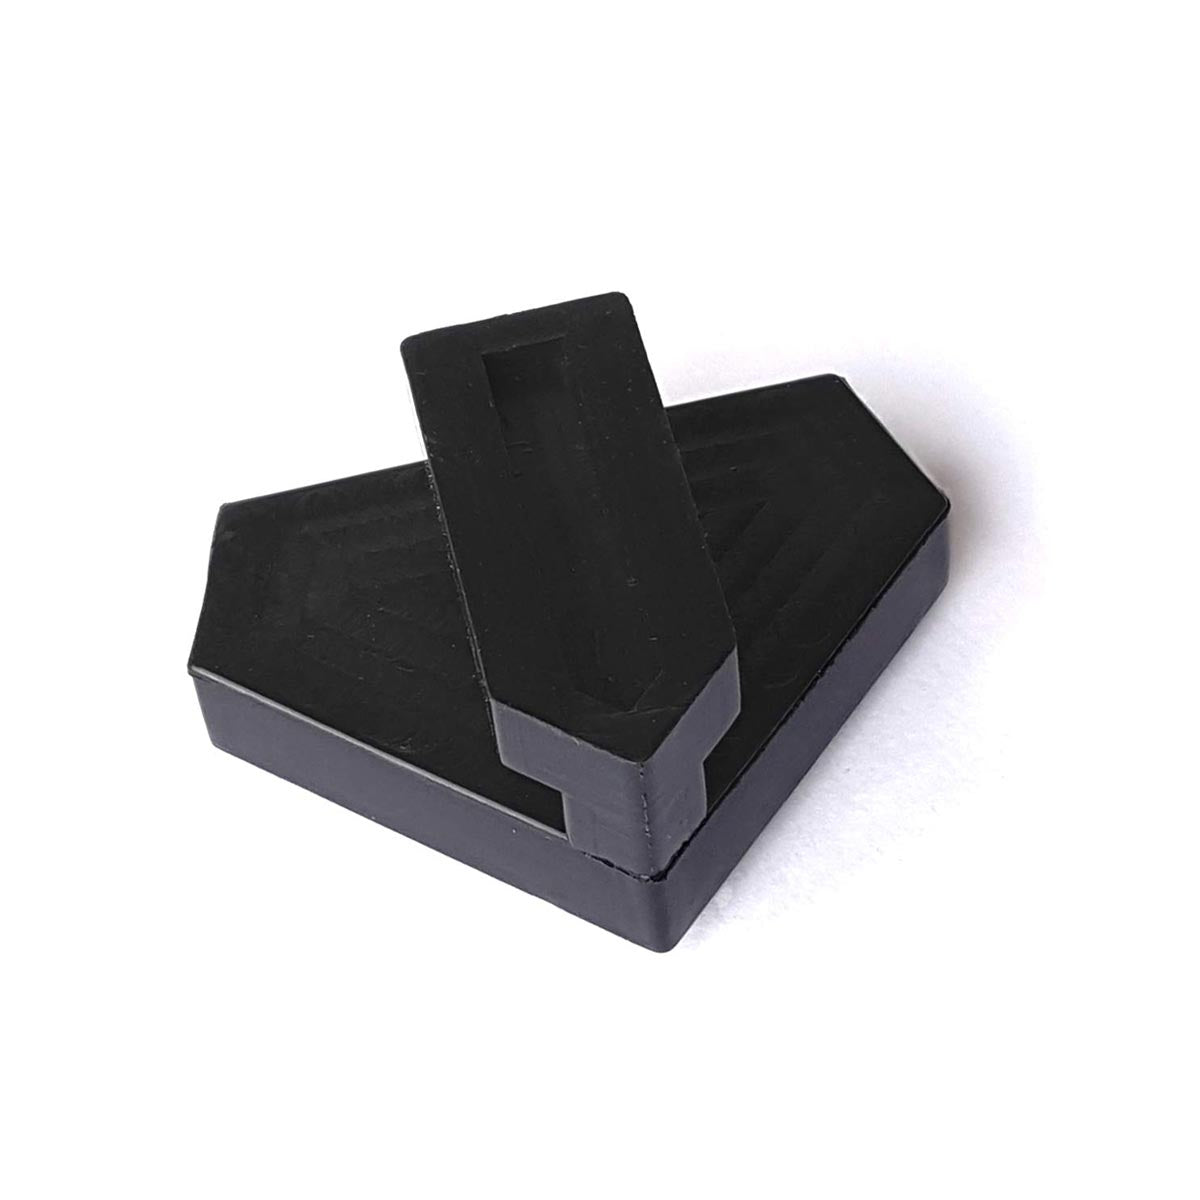 Black (hard) Tri Clamping Pad - Underpinner Spares